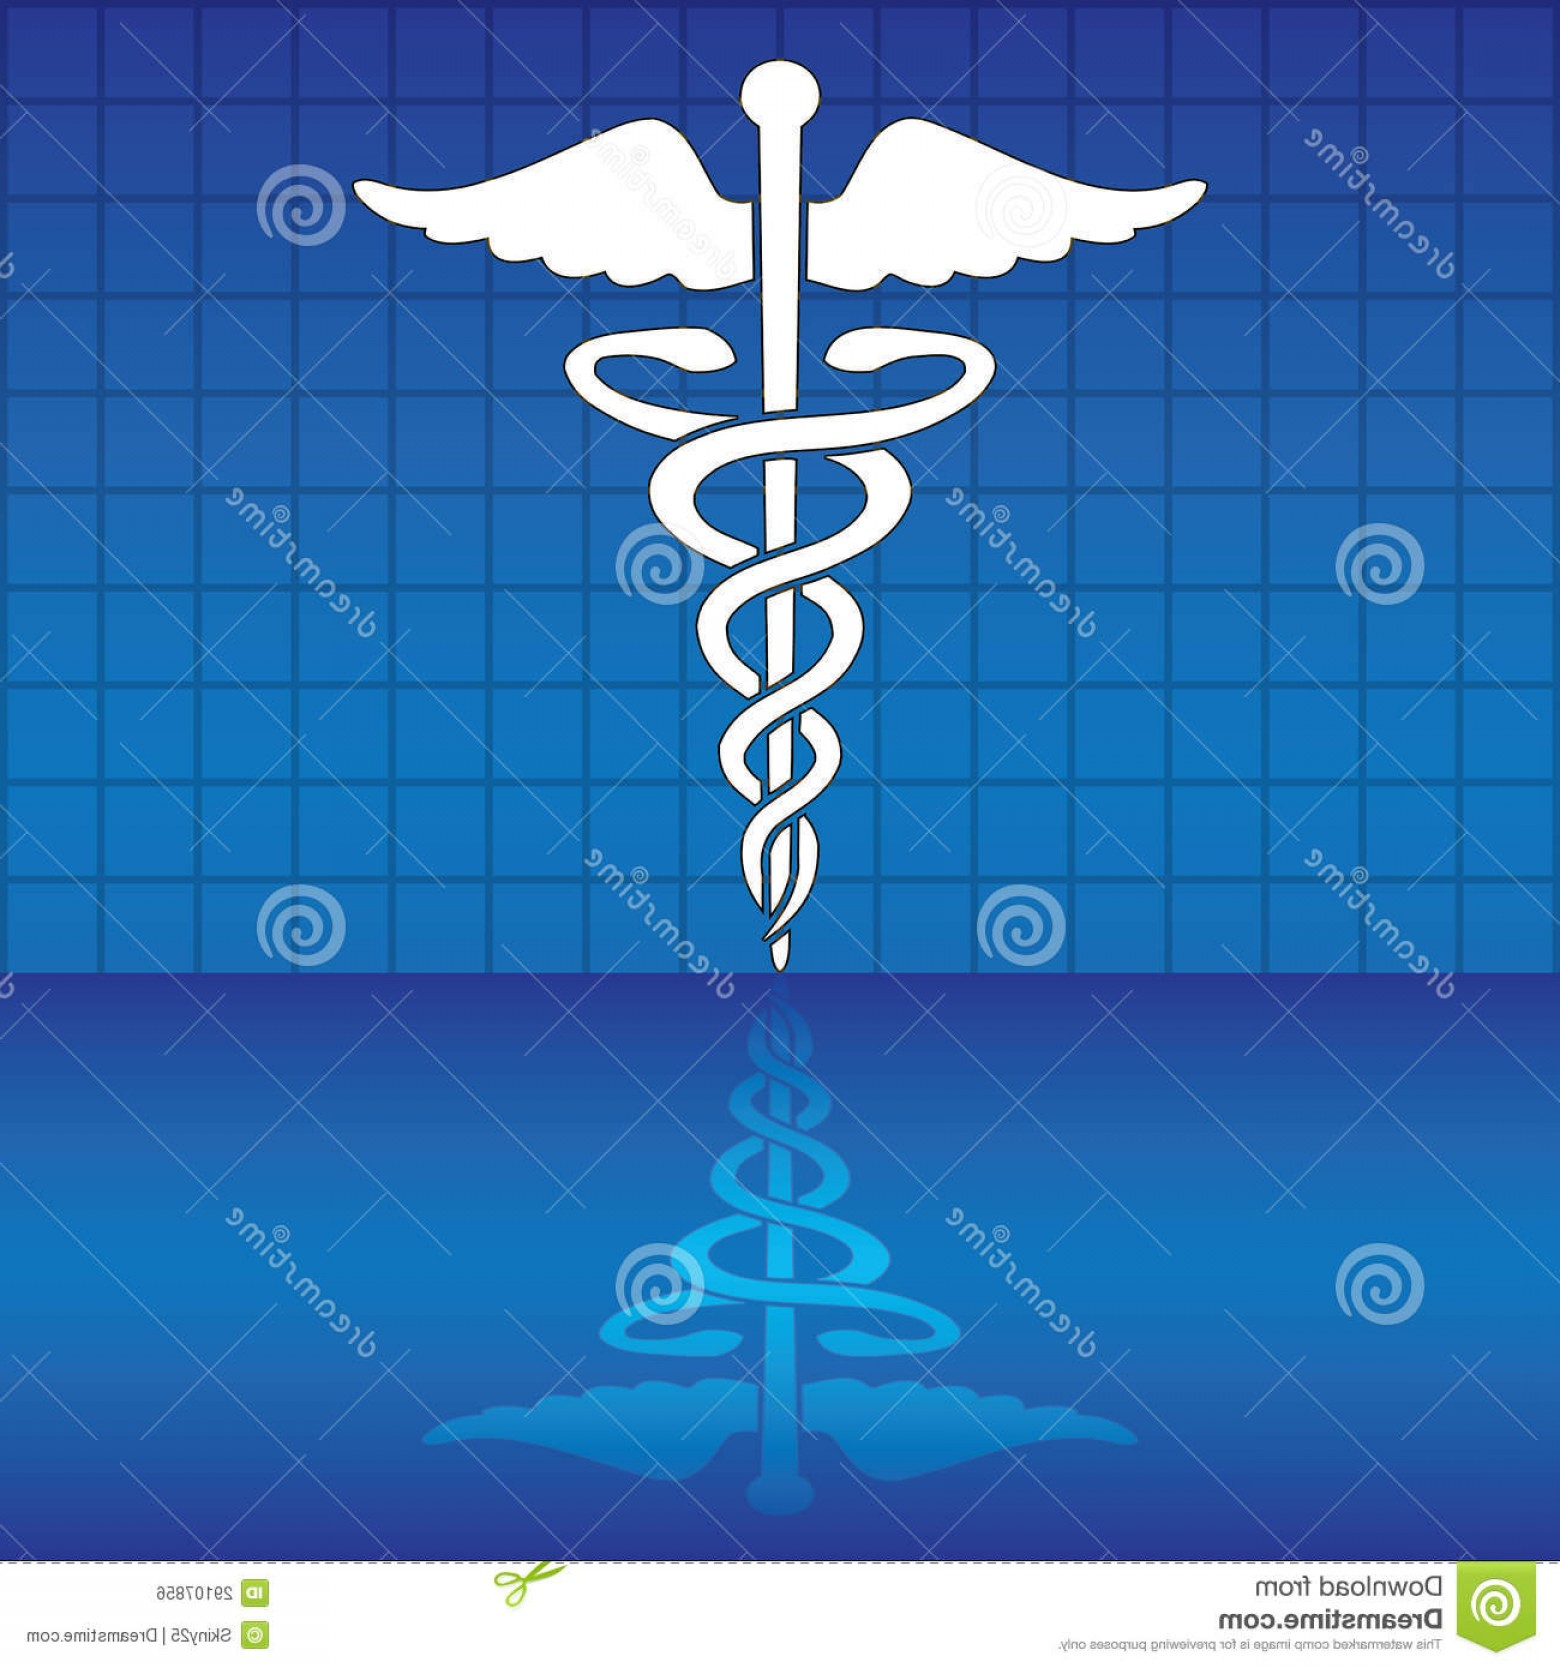 Medical Scepter Vector: Royalty Free Stock Image Caduceus Medical Symbol Vector Illustration Image